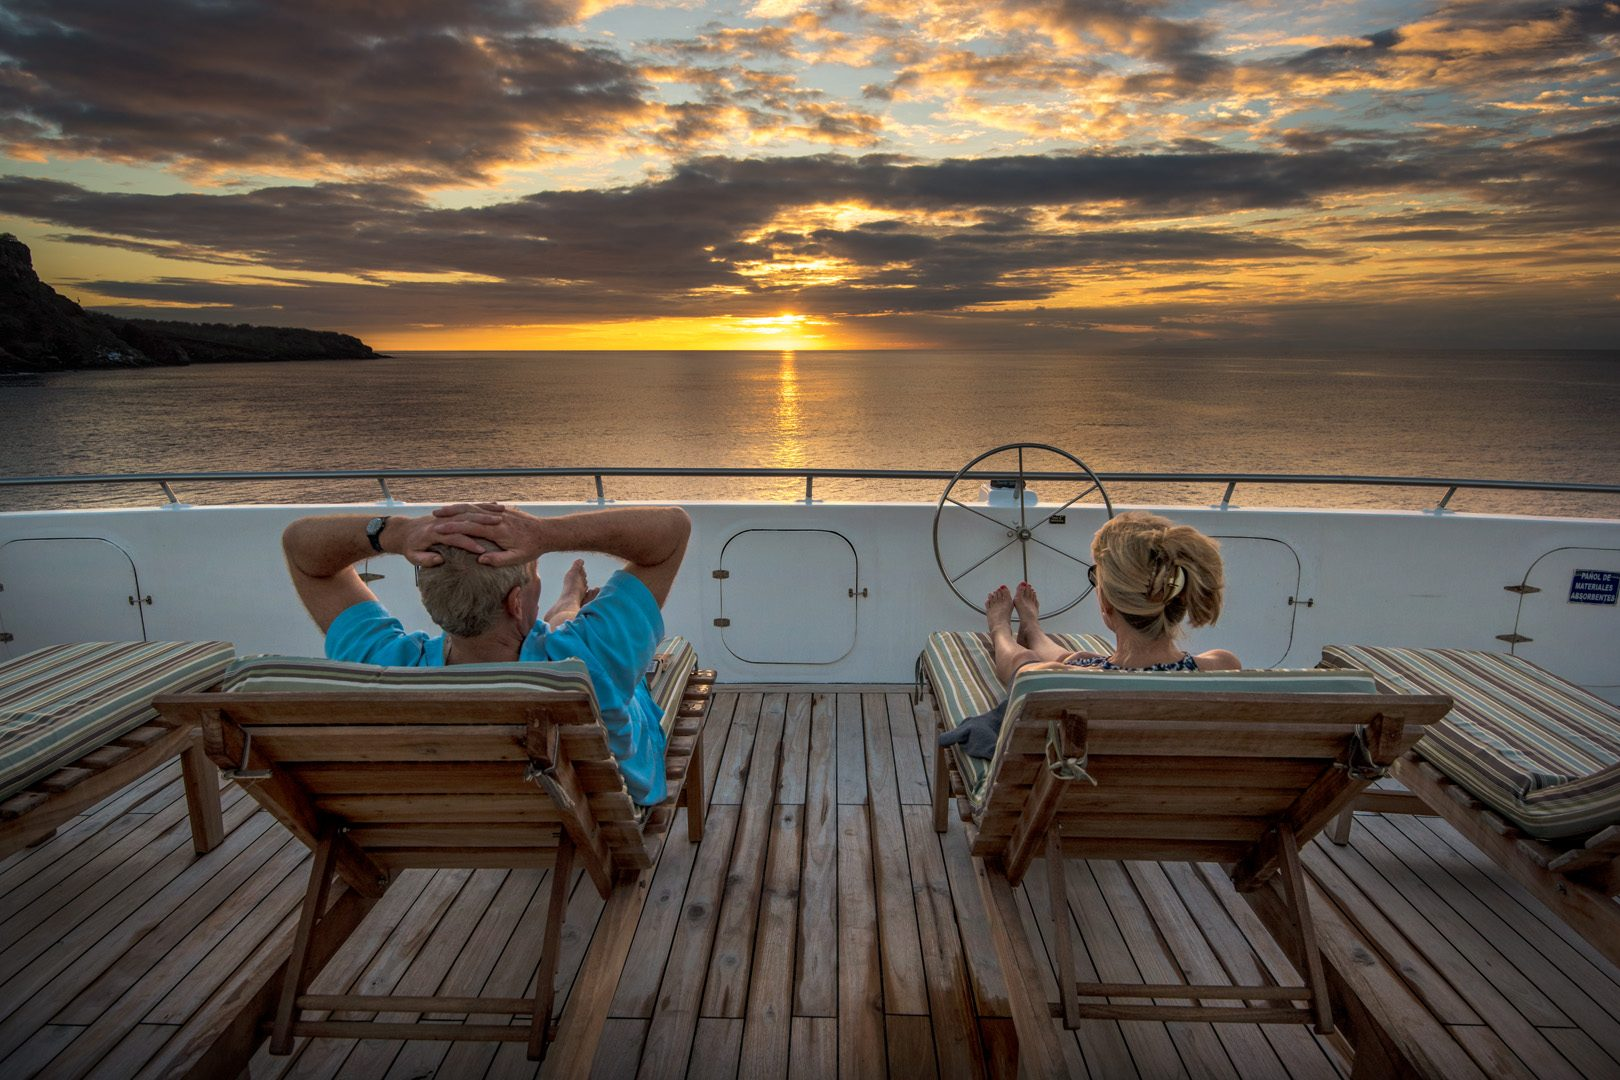 View from the sundeck of the Seaman Journey, Galapagos Islands, Ecuador (photo credit Reed Kaestner)